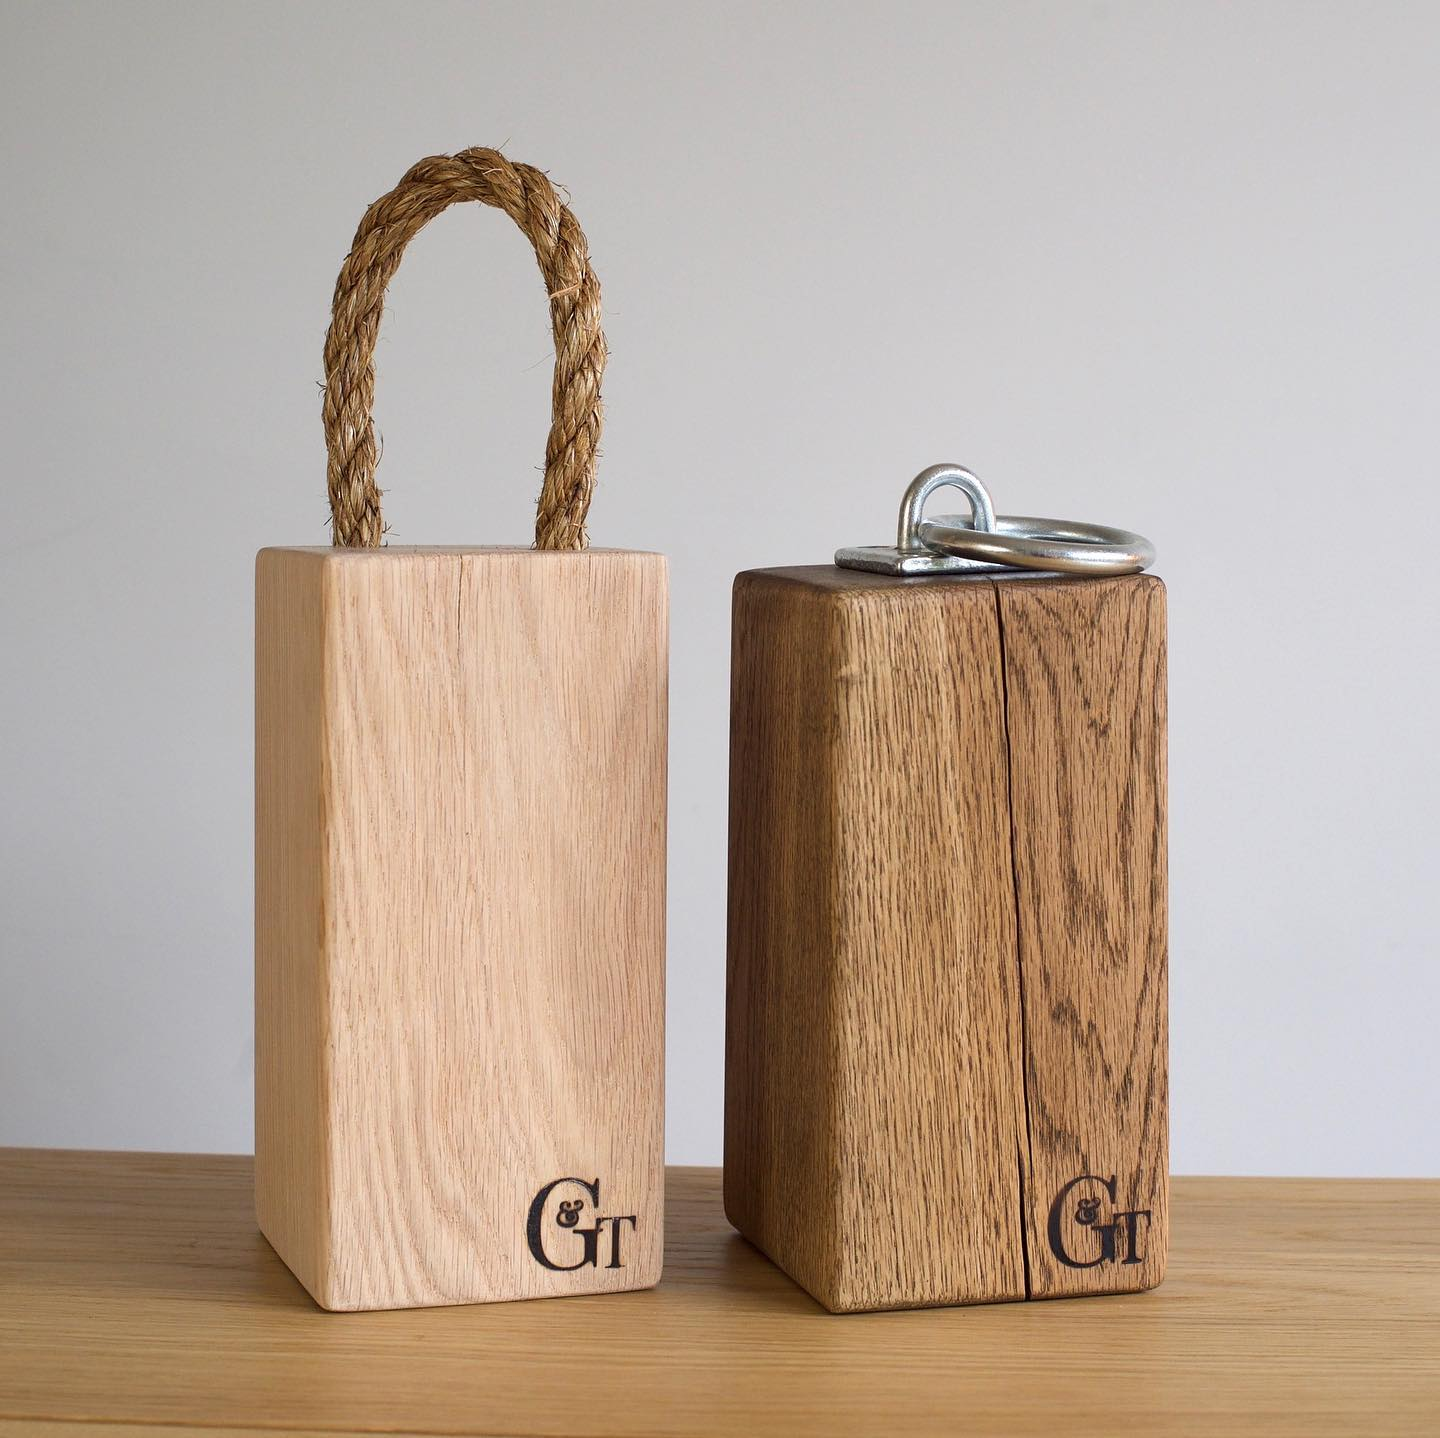 Morning! Wow it's a scorcher today! We are working on more doorstops at the moment and wanted to pick your brains. Previously, we have made both dark oak and bare oak doorstops. We found that the lighter ones don't seem as popular so we haven't made any in a while. wondering whether or not to restock ...? What do you think? Which one do you prefer? ....#handcrafted #homewares #homedecor #hotweather #summertime #doorstop #craft #oakdoorstop #woodteatments #tomakeornottomakethatisthequestion #gingerandtweed #makersmarketfromhome